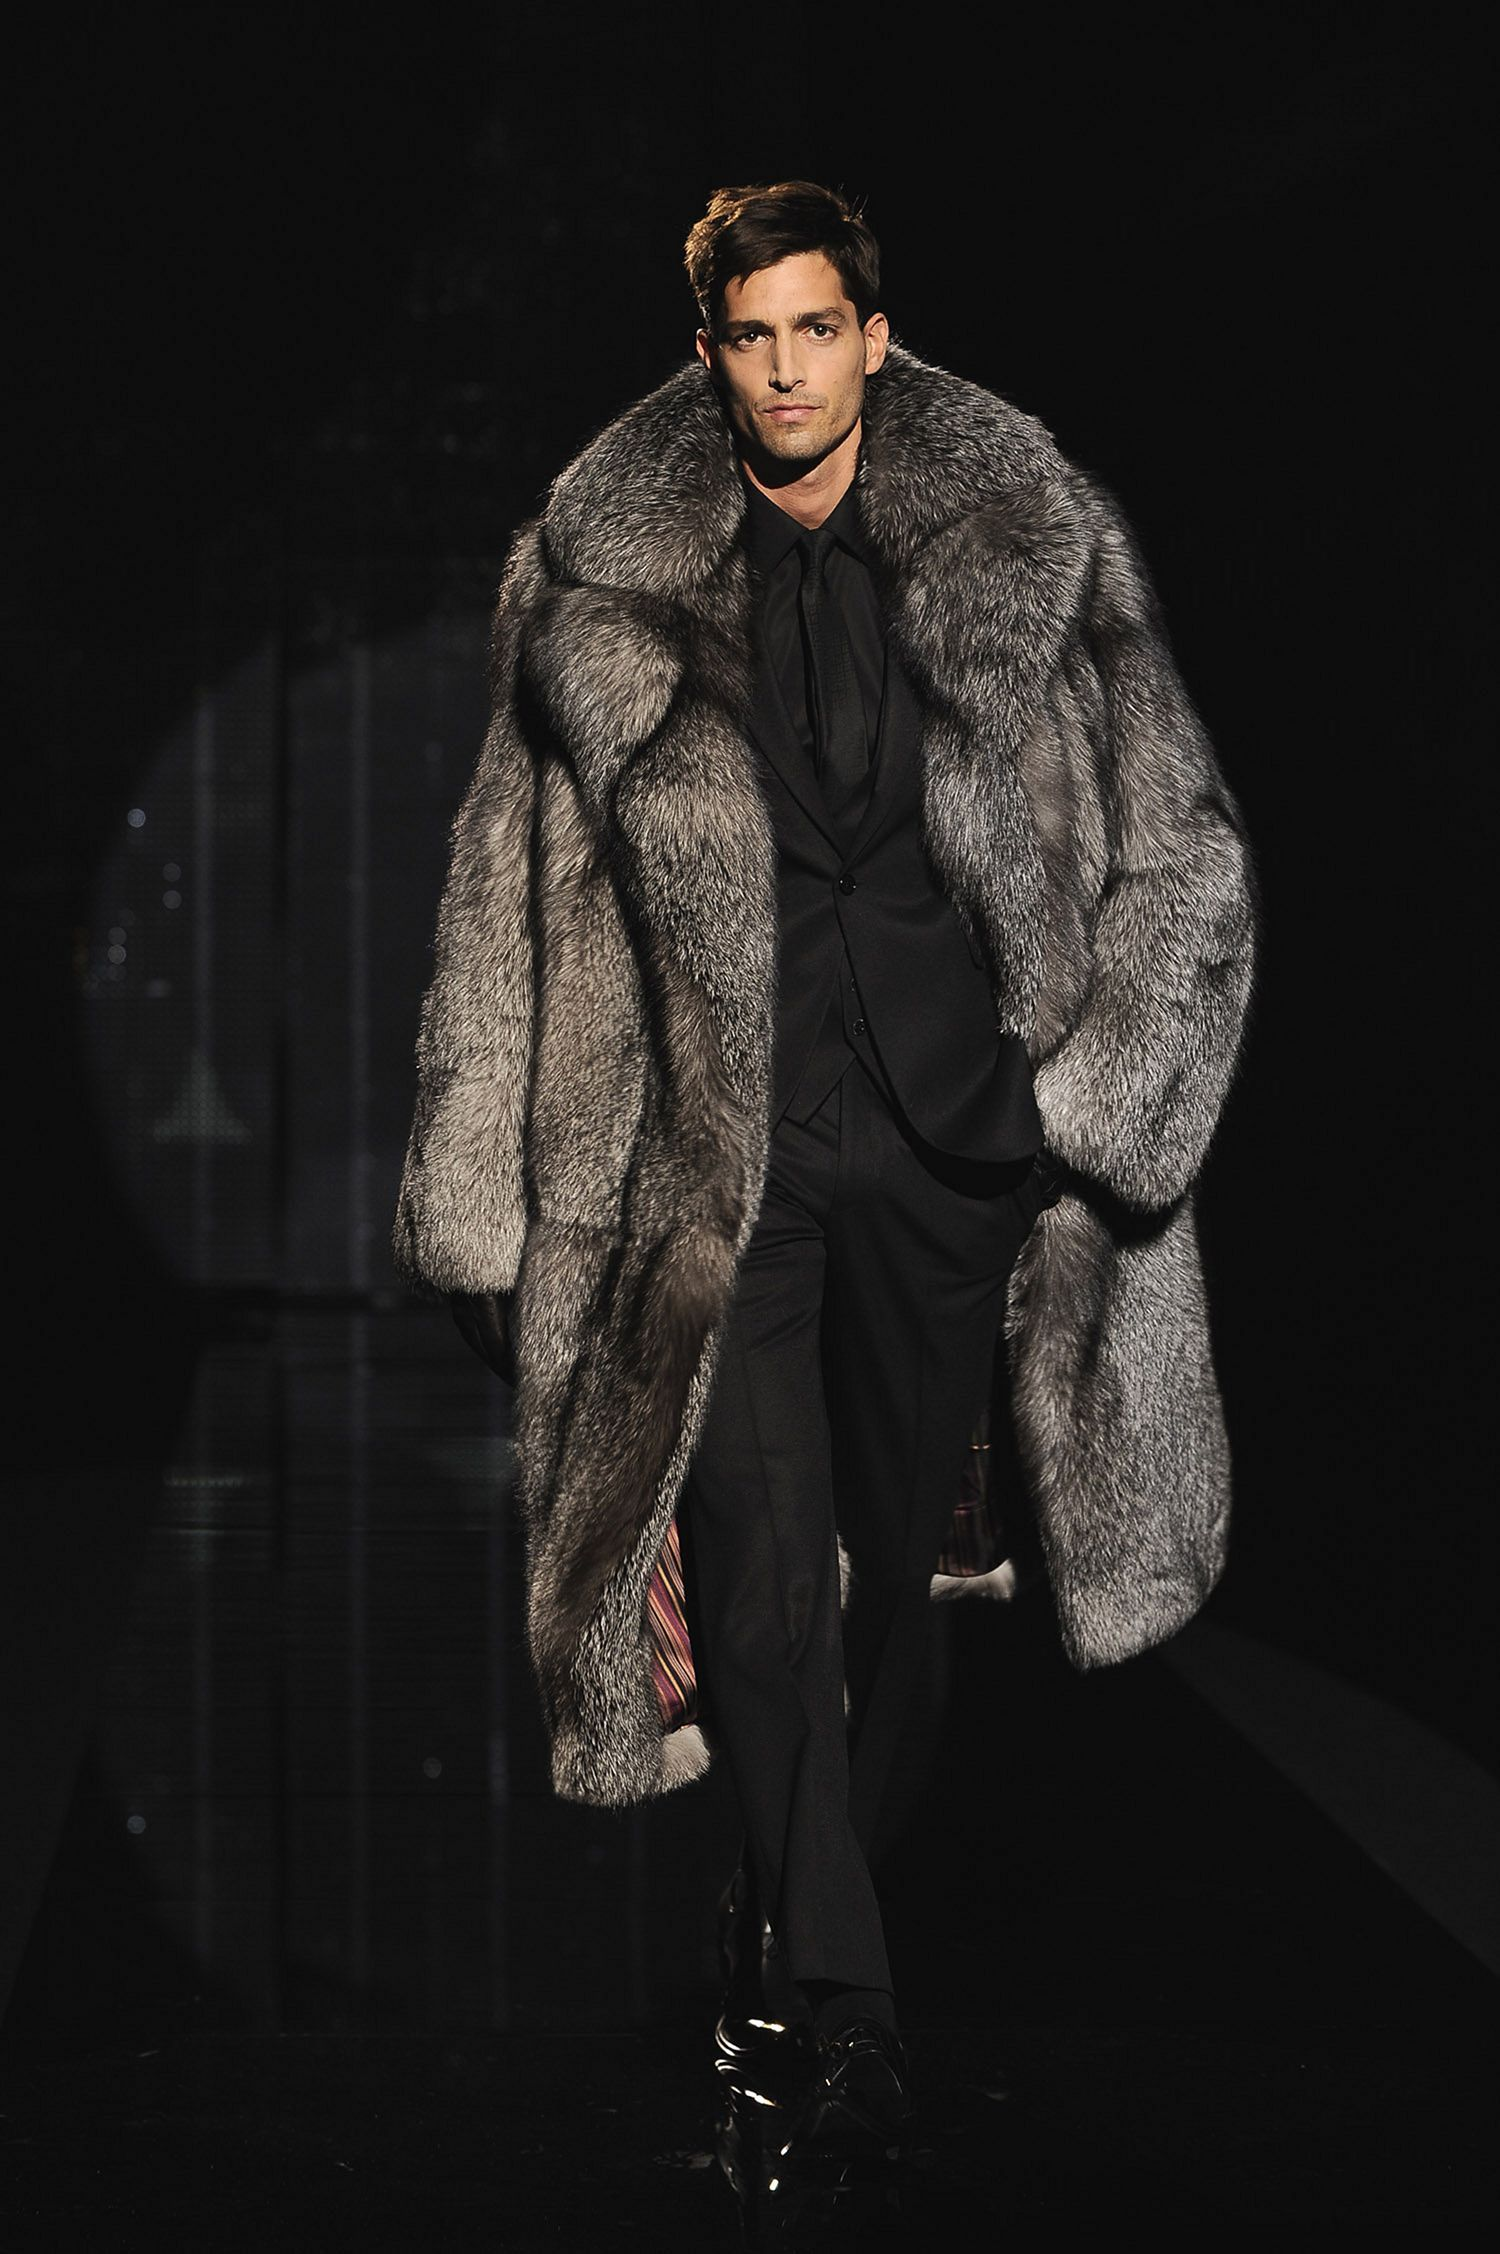 Amazing 40+ Gorgeous Winter Fur Coats For Men Ideas https